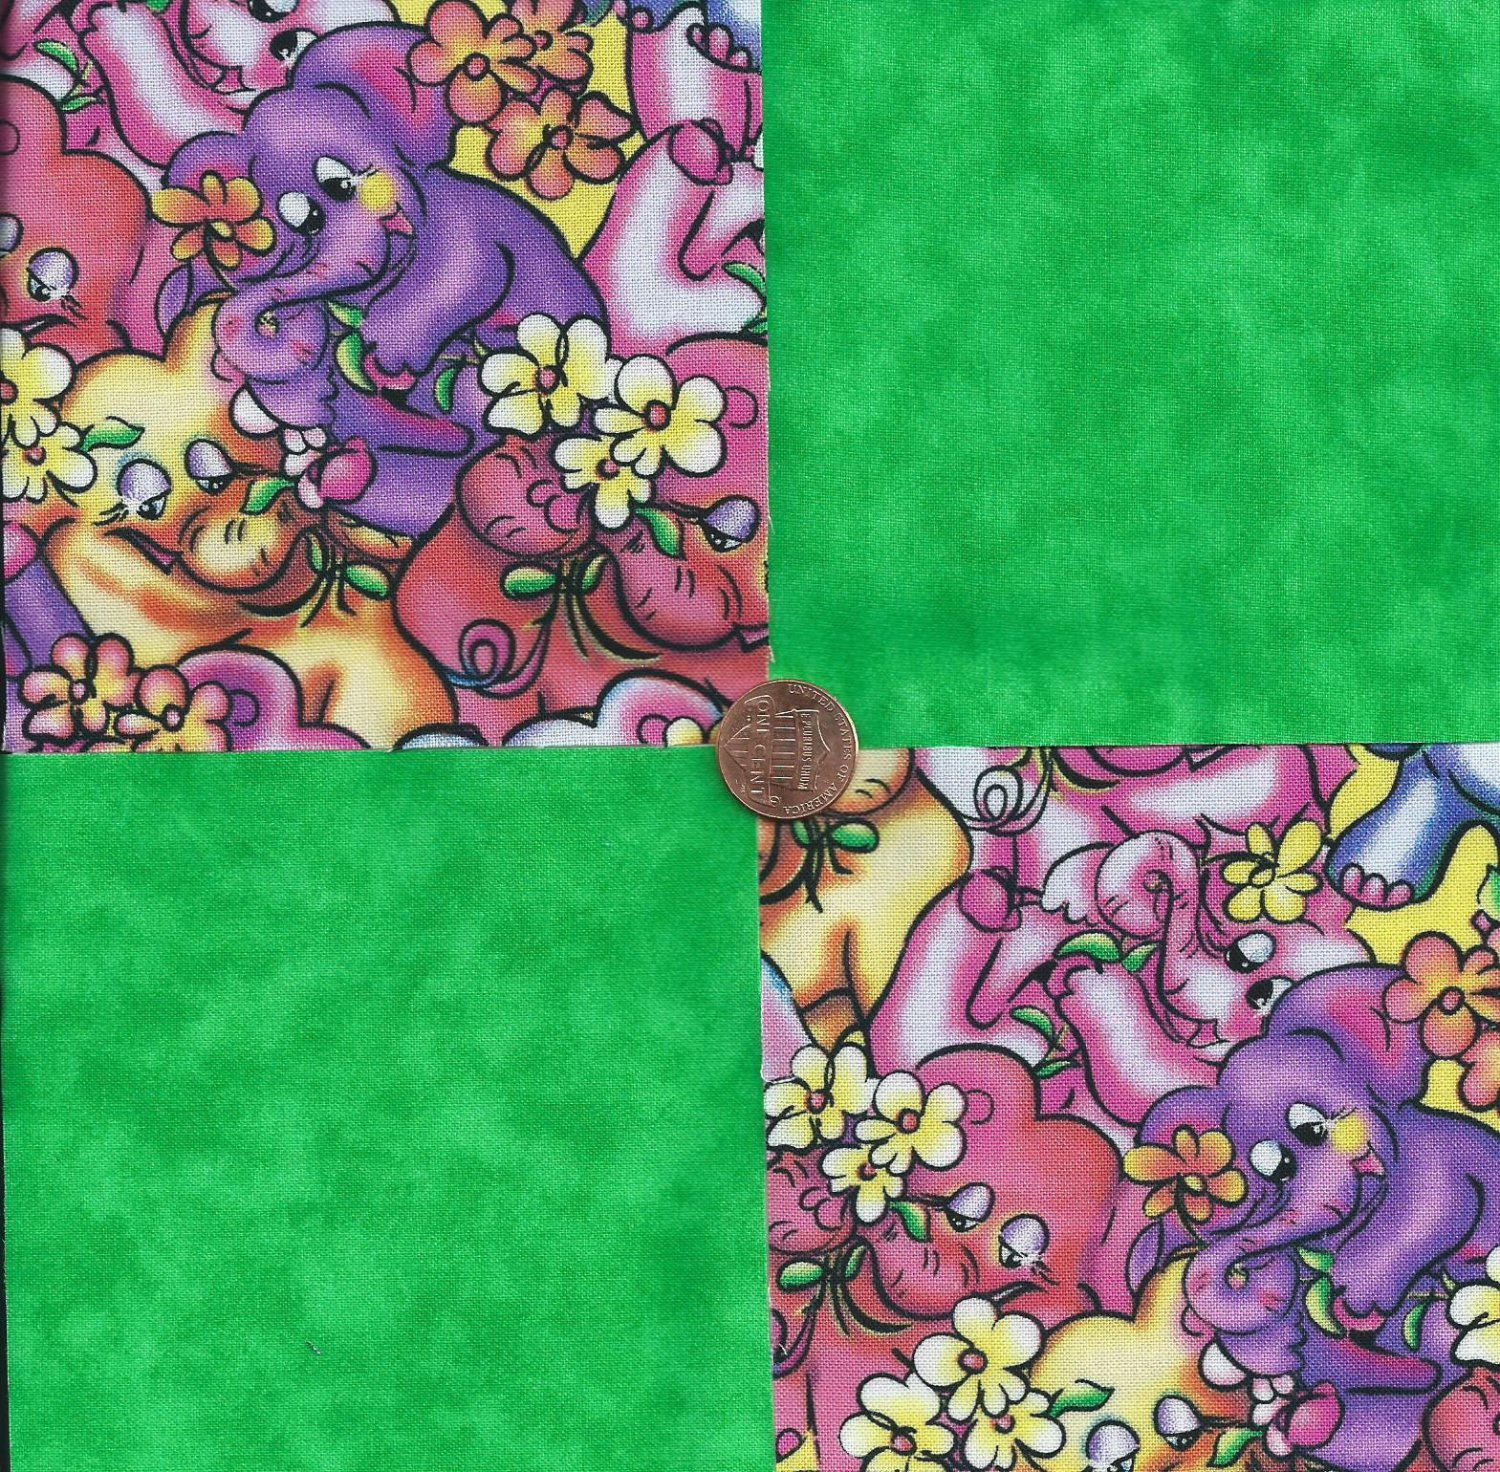 Colorful Elephants Green Solid 100% Cotton Fabric Quilt Square Blocks FT